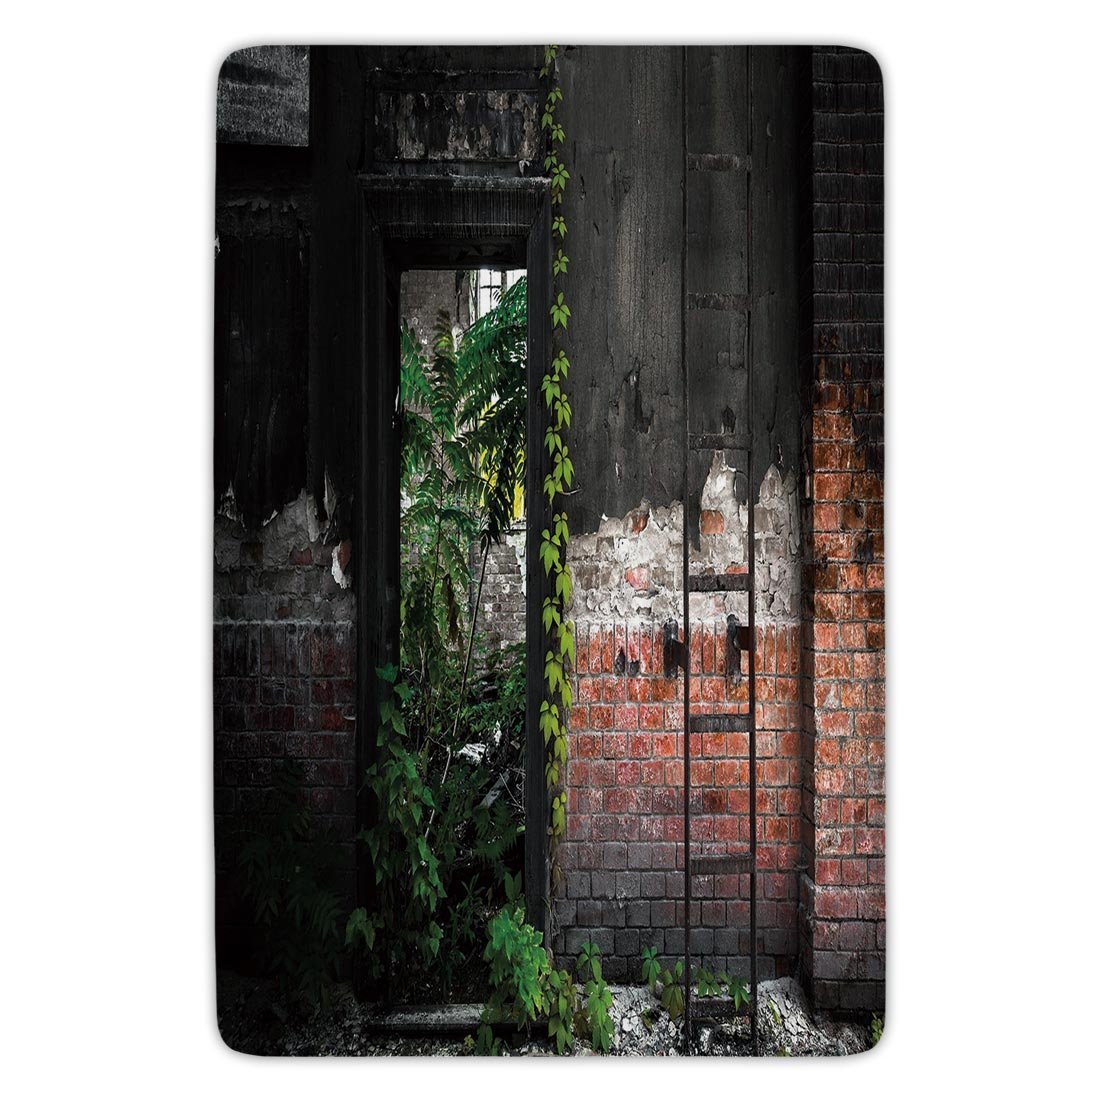 Bathroom Bath Rug Kitchen Floor Mat Carpet,Industrial Decor,Old Door Opening in a Desolate Industry Building Brick Wall Ivy Plants Decorative,Multicolor,Flannel Microfiber Non-slip Soft Absorbent